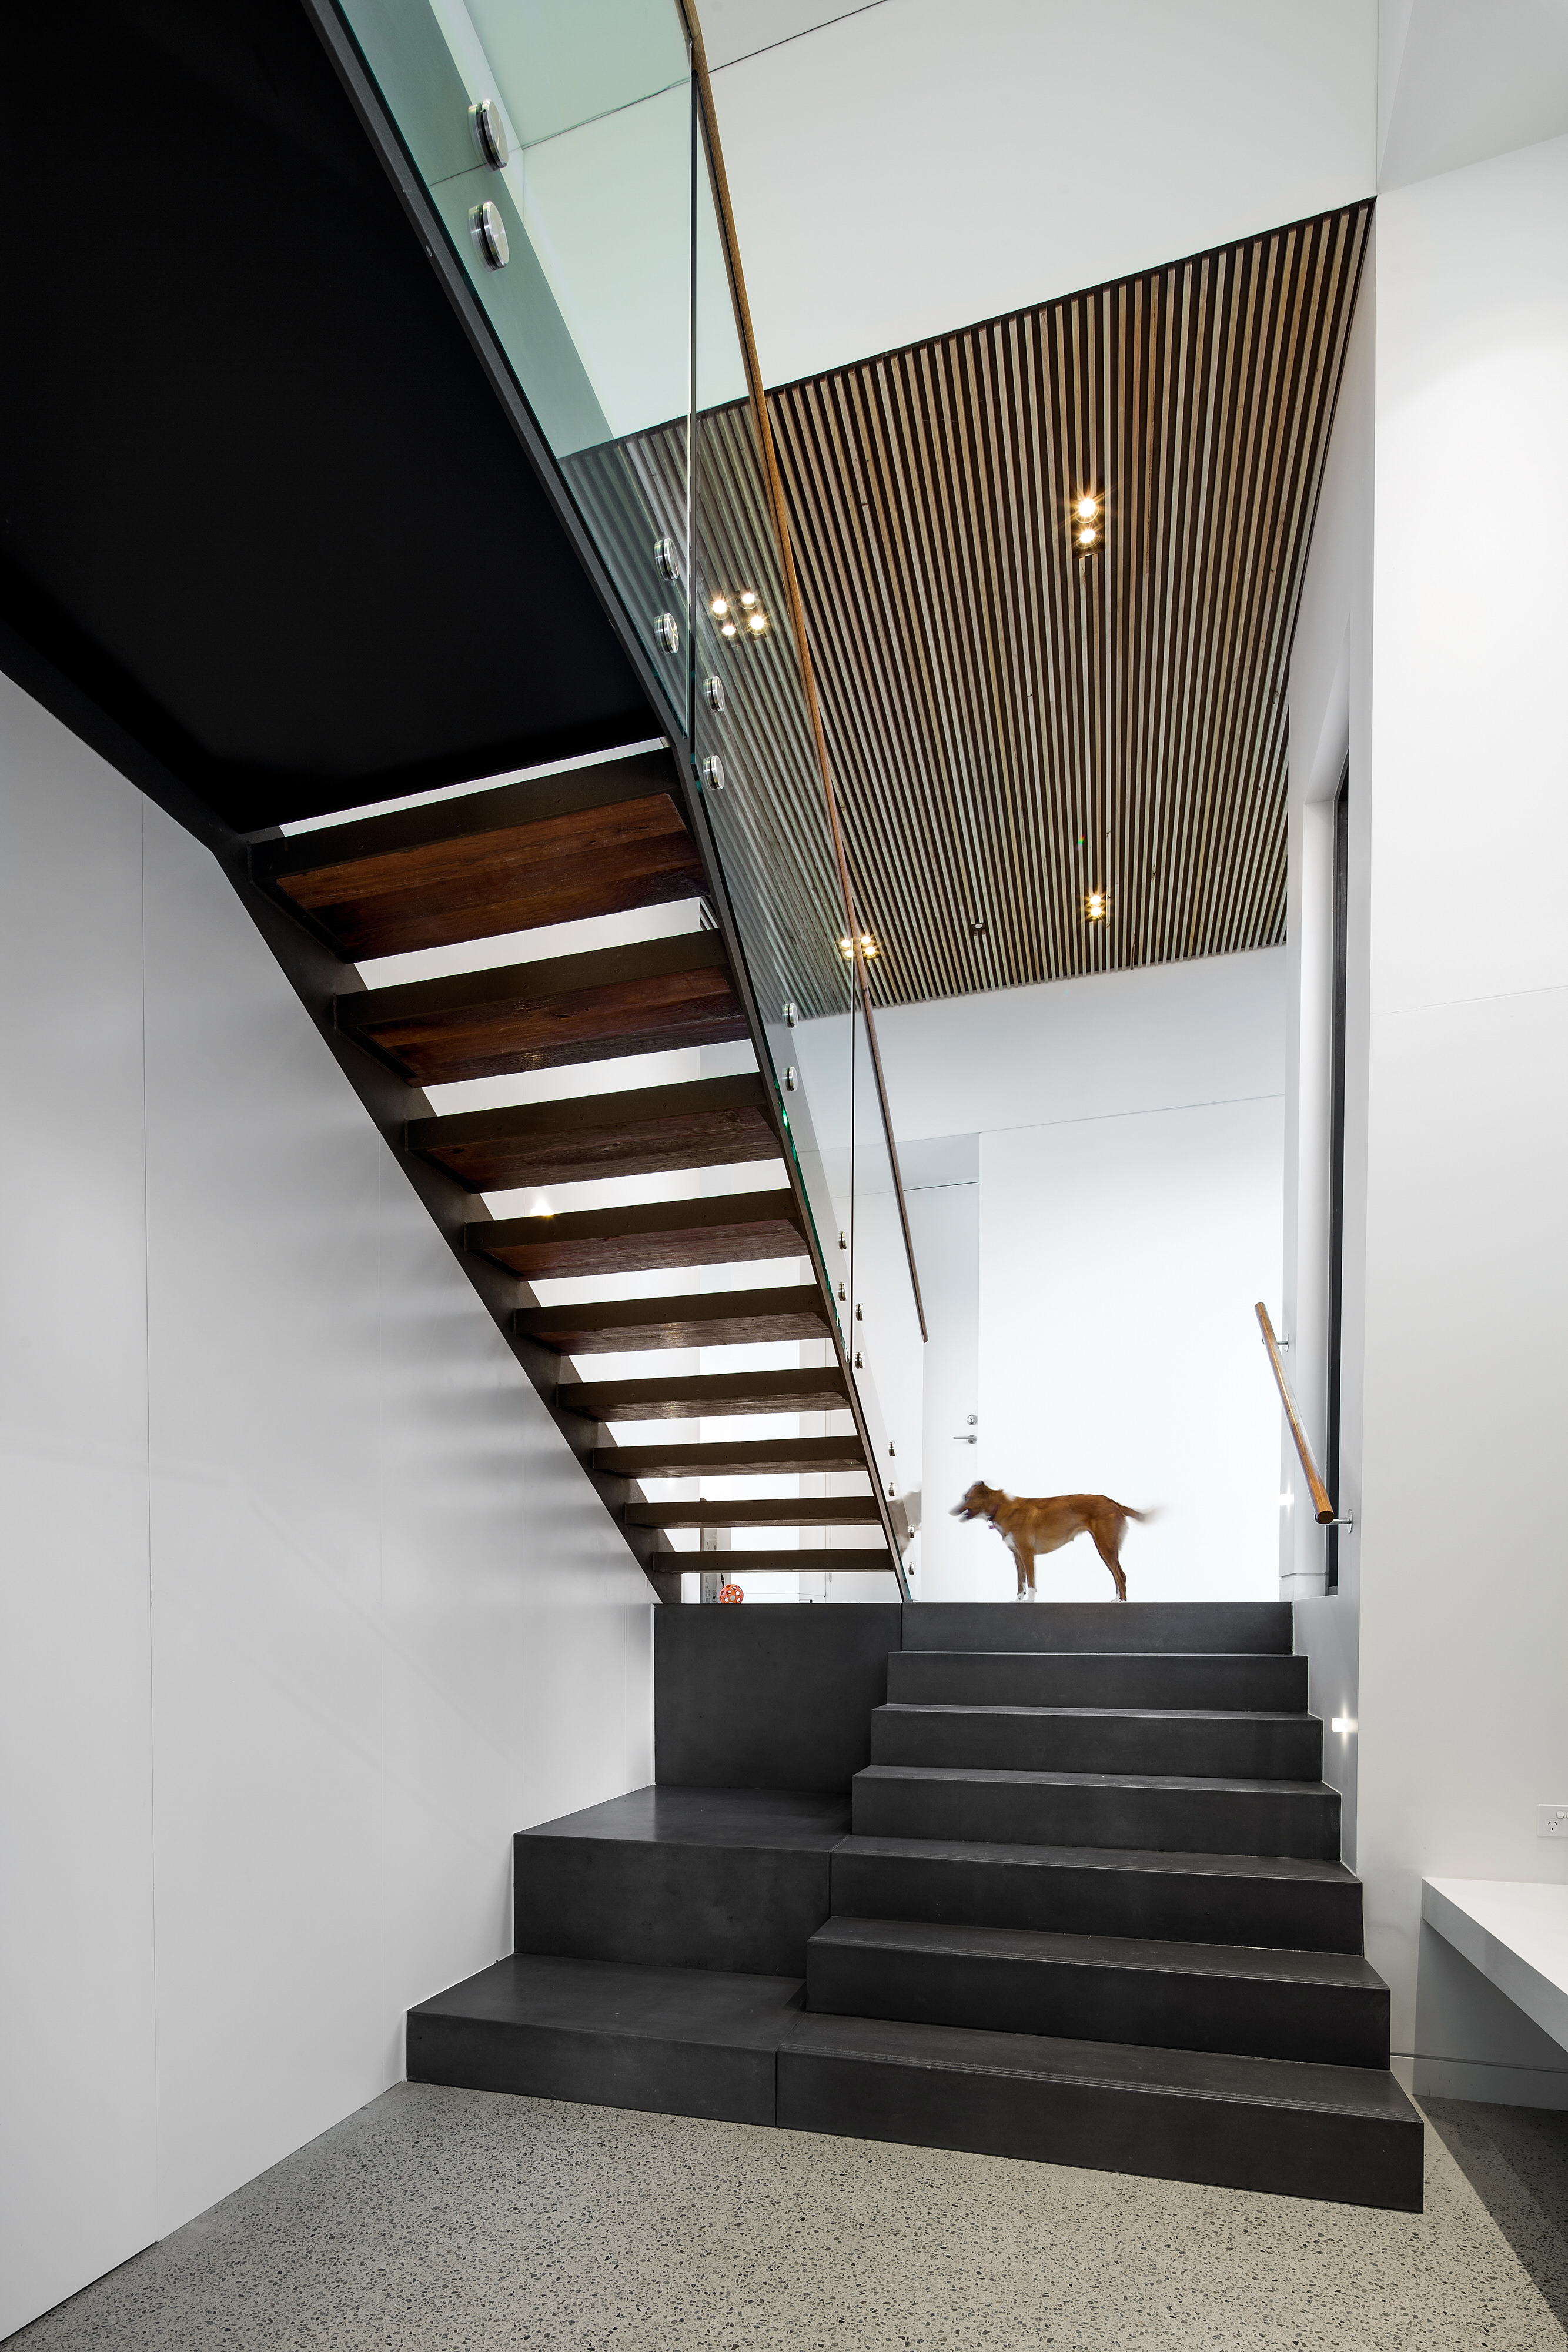 architectural designed staircase with dog standing on landing